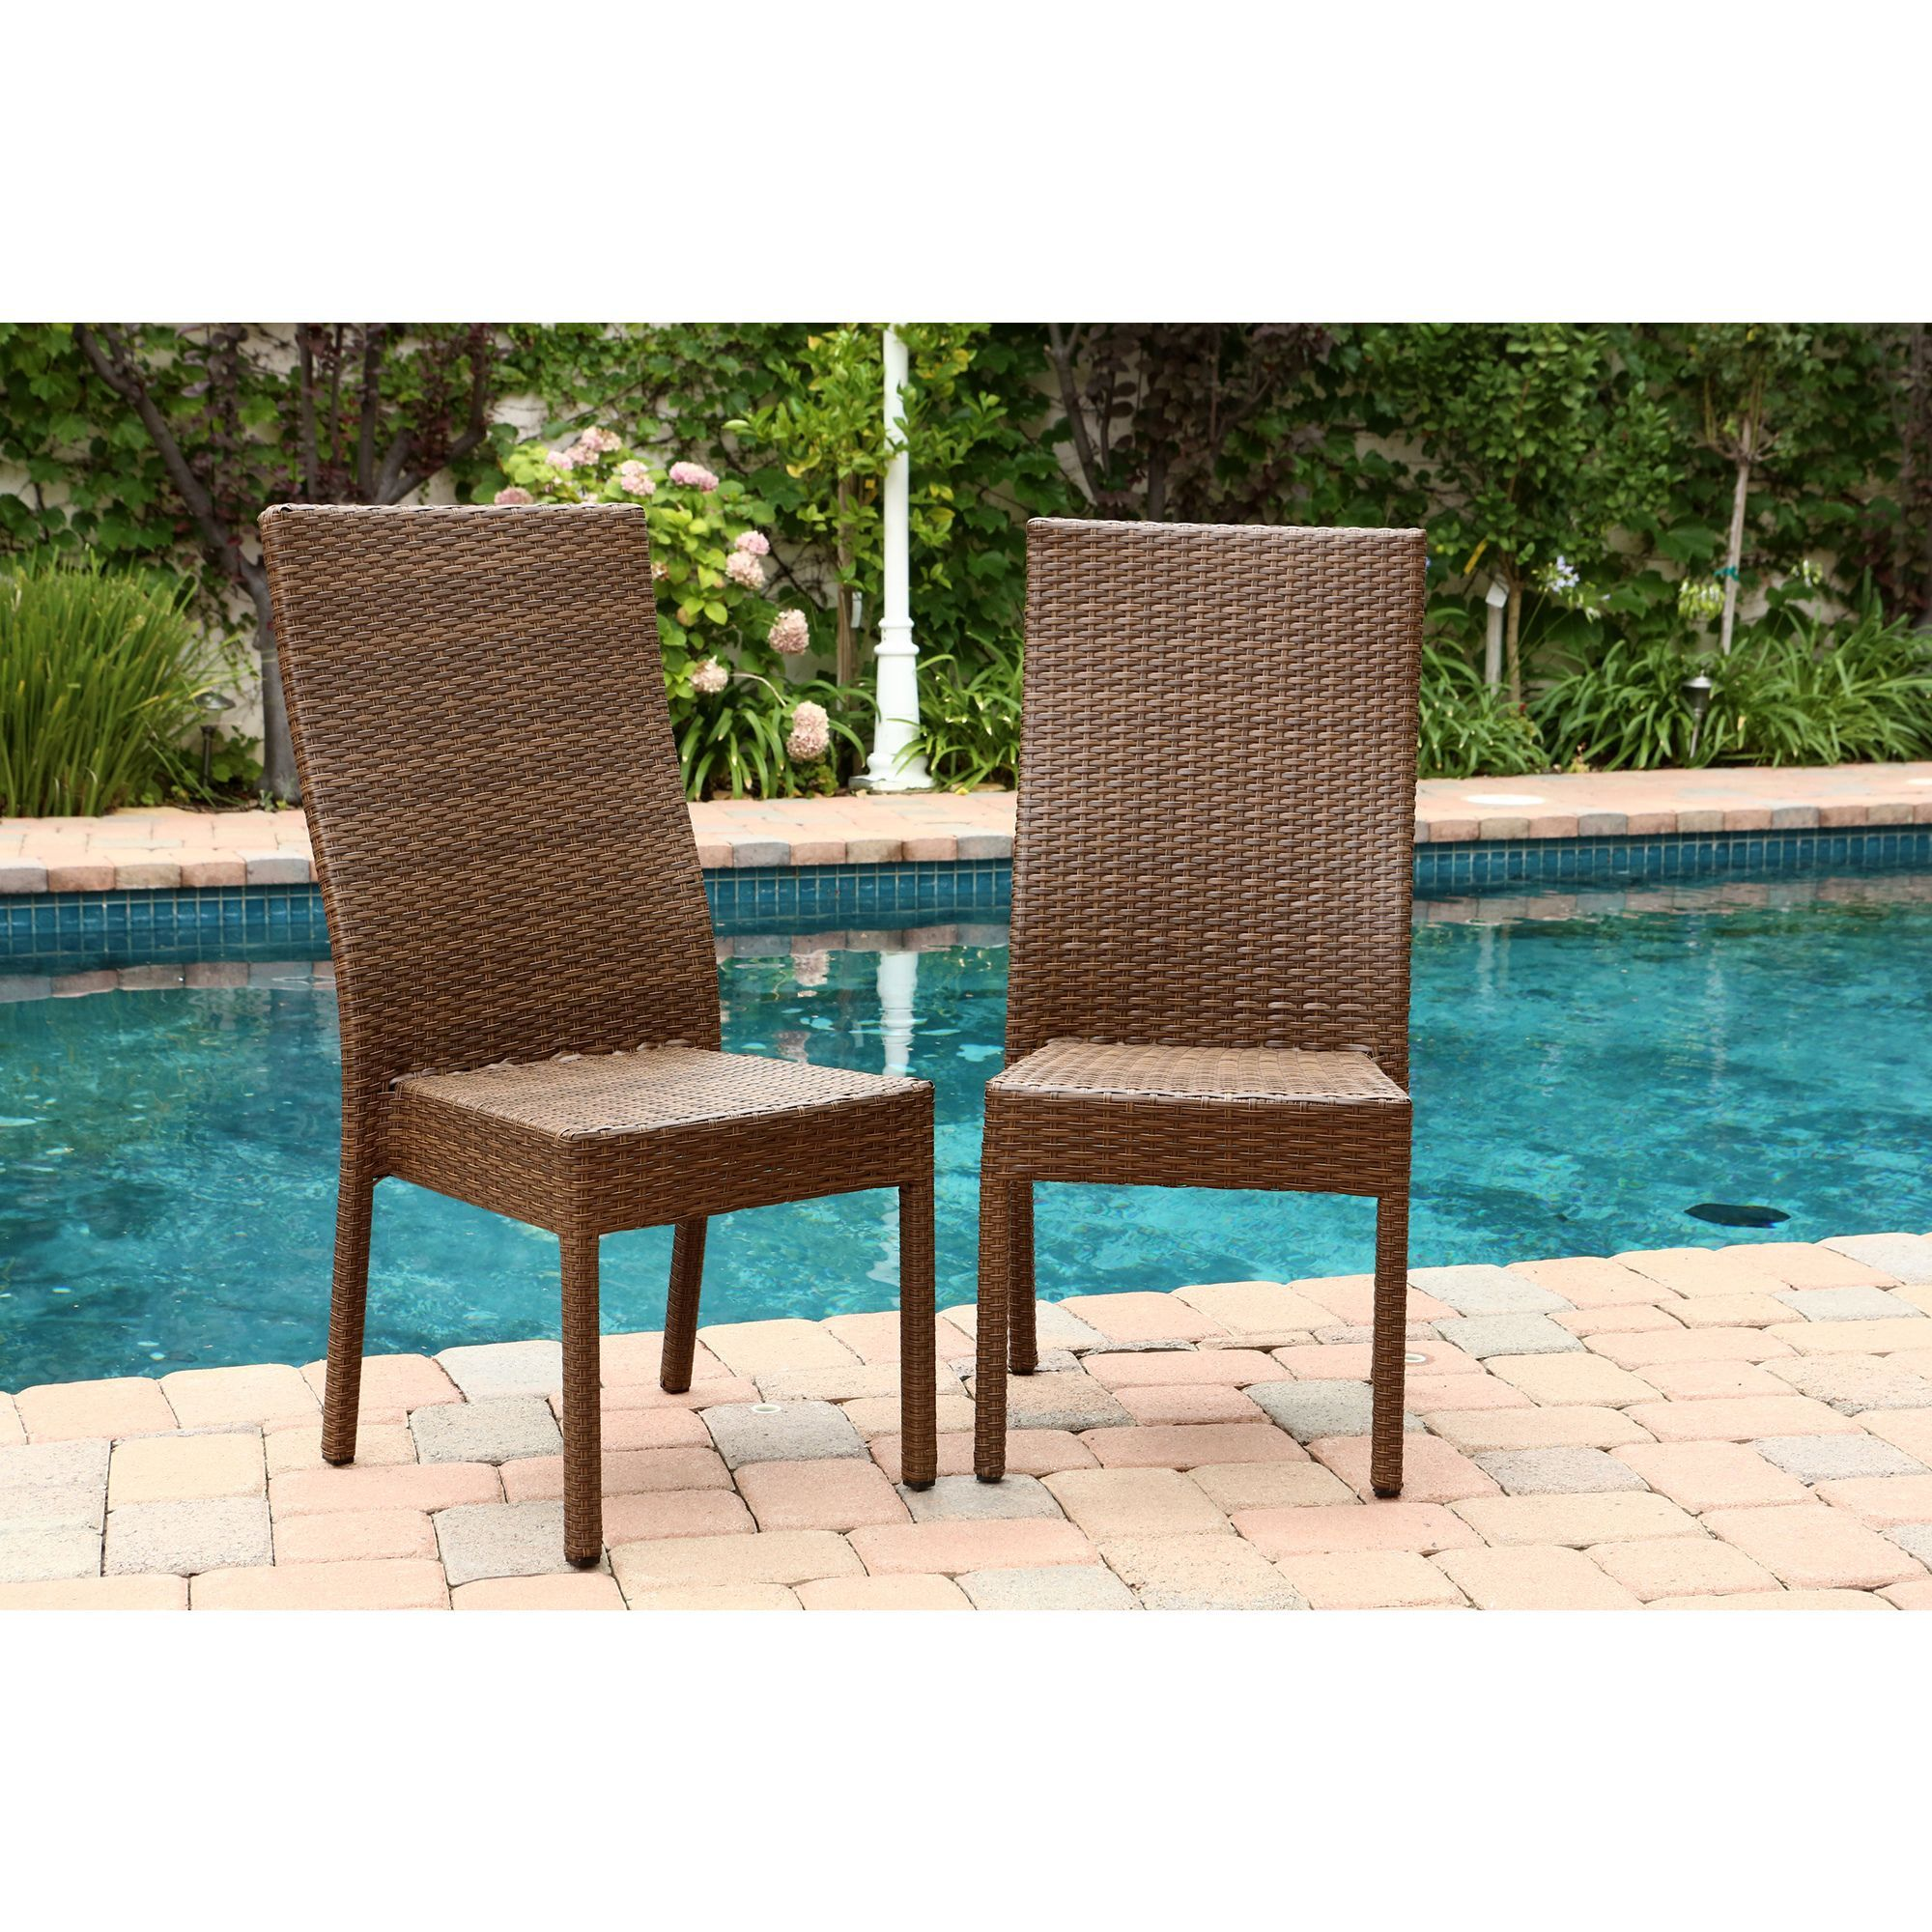 Abbyson Living Palermo Outdoor Brown Wicker Dining Chairs Set of